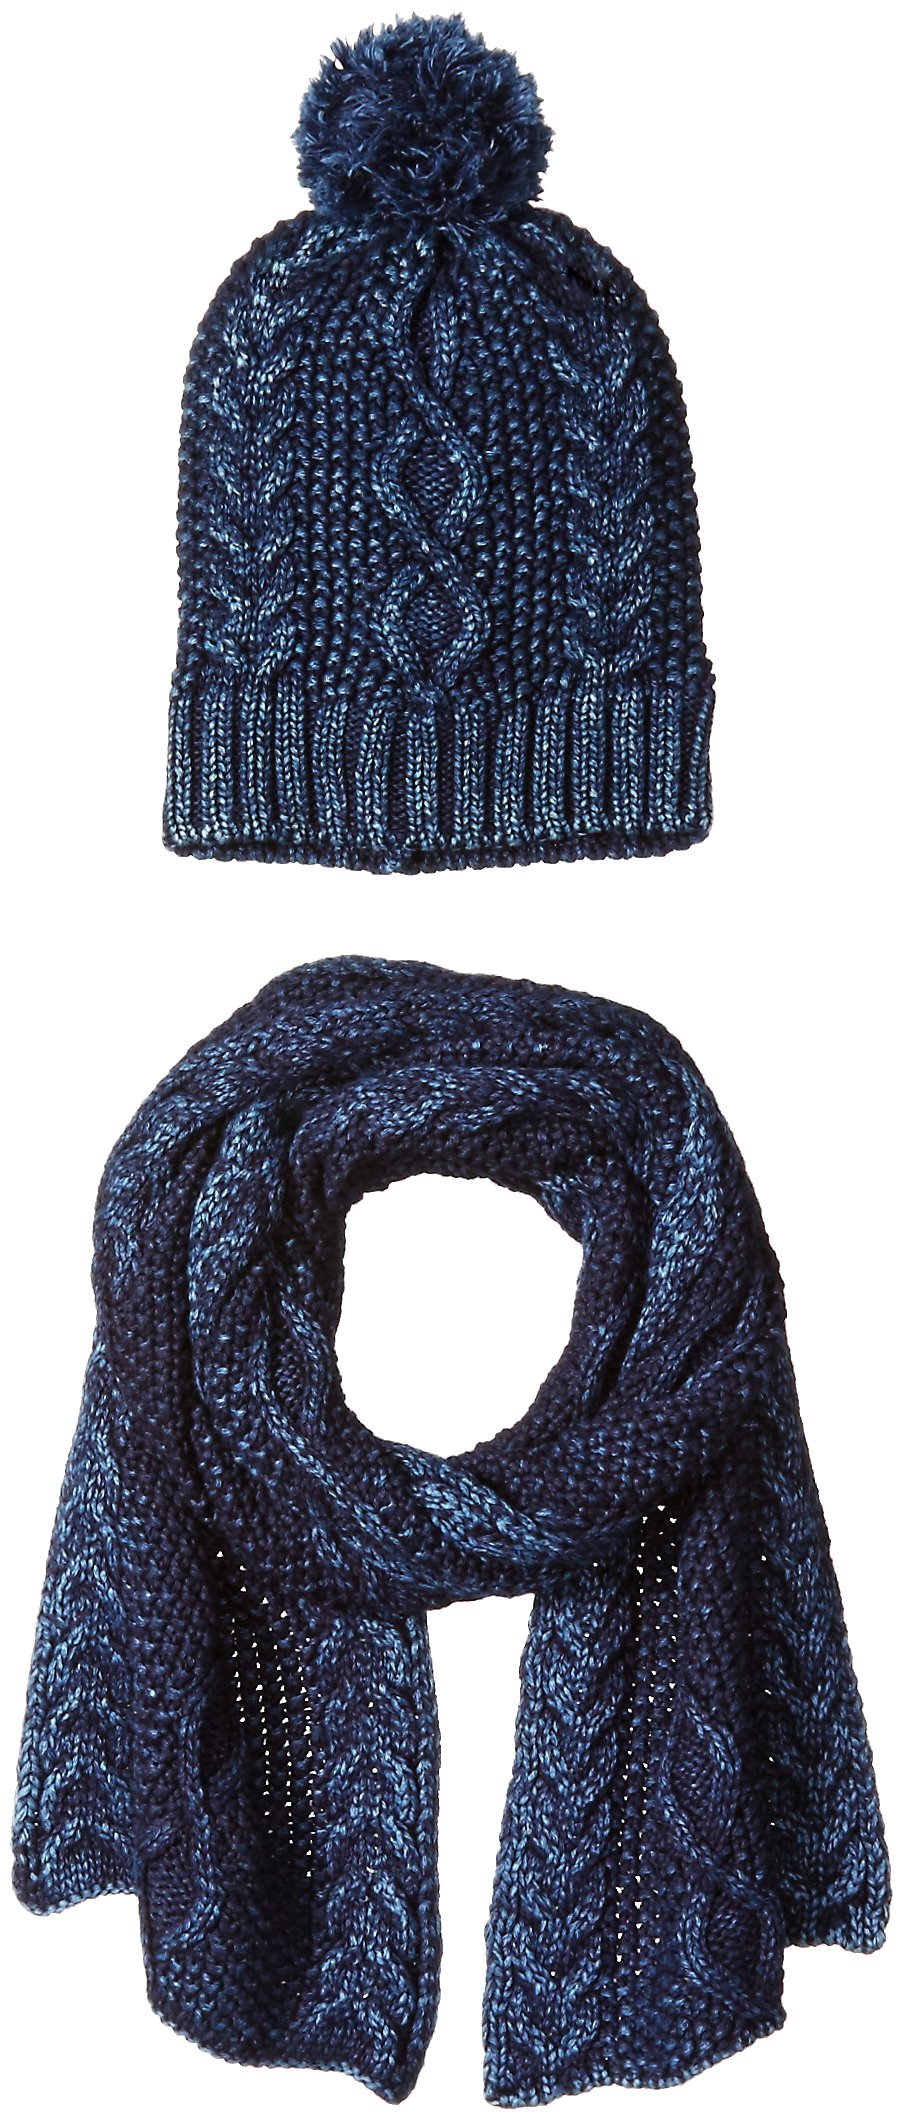 La Fiorentina Women's Cozy Gift Set with Cable Knit Beanie and Scarf, Denim, One Size